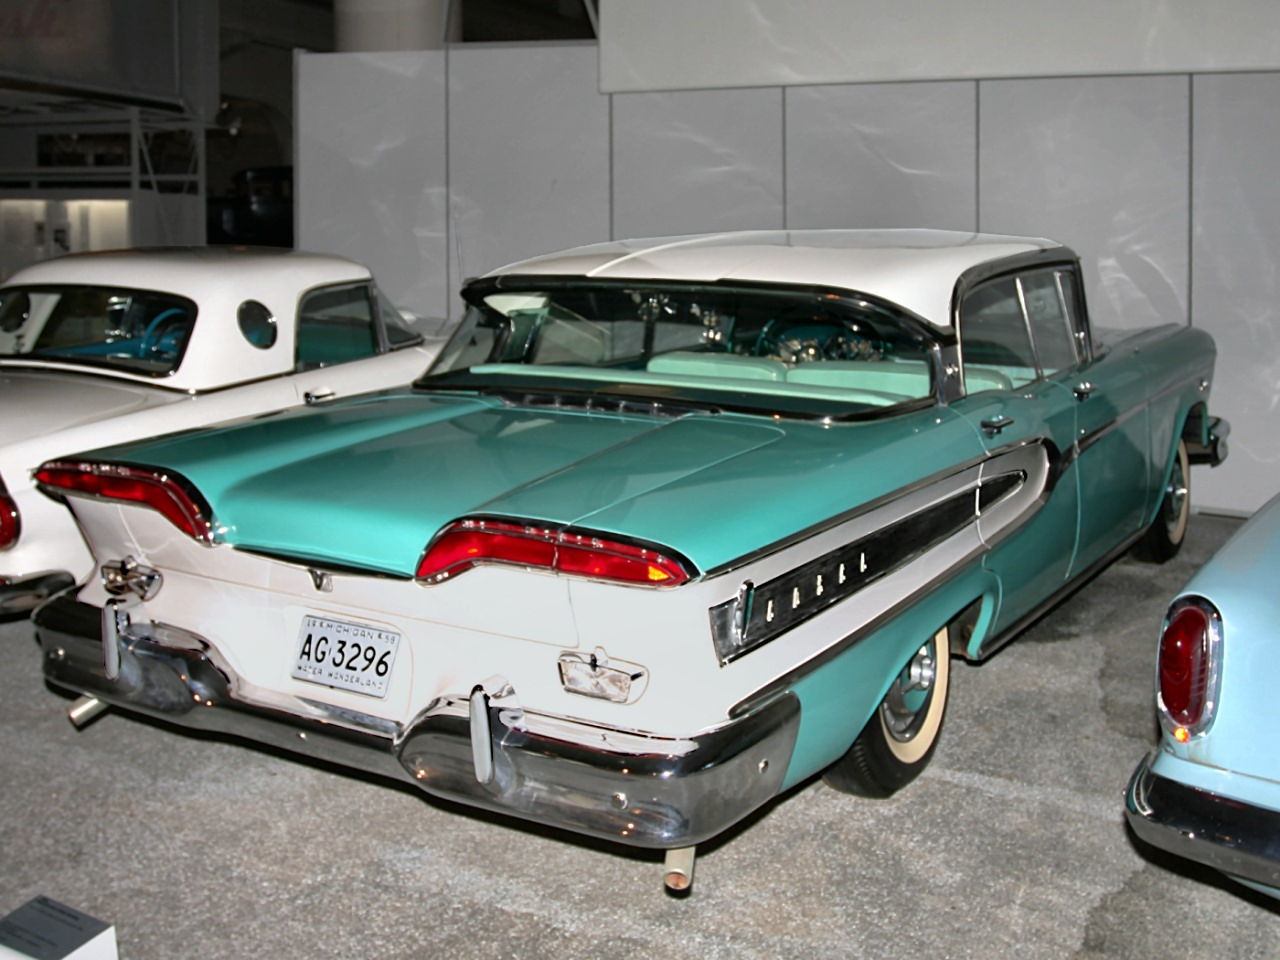 1958 Edsel Wiring Diagram Library Ford Corsair Citation 4 Door Hardtop Serial Number One 410cid 345hp Turquoise White Rvr H